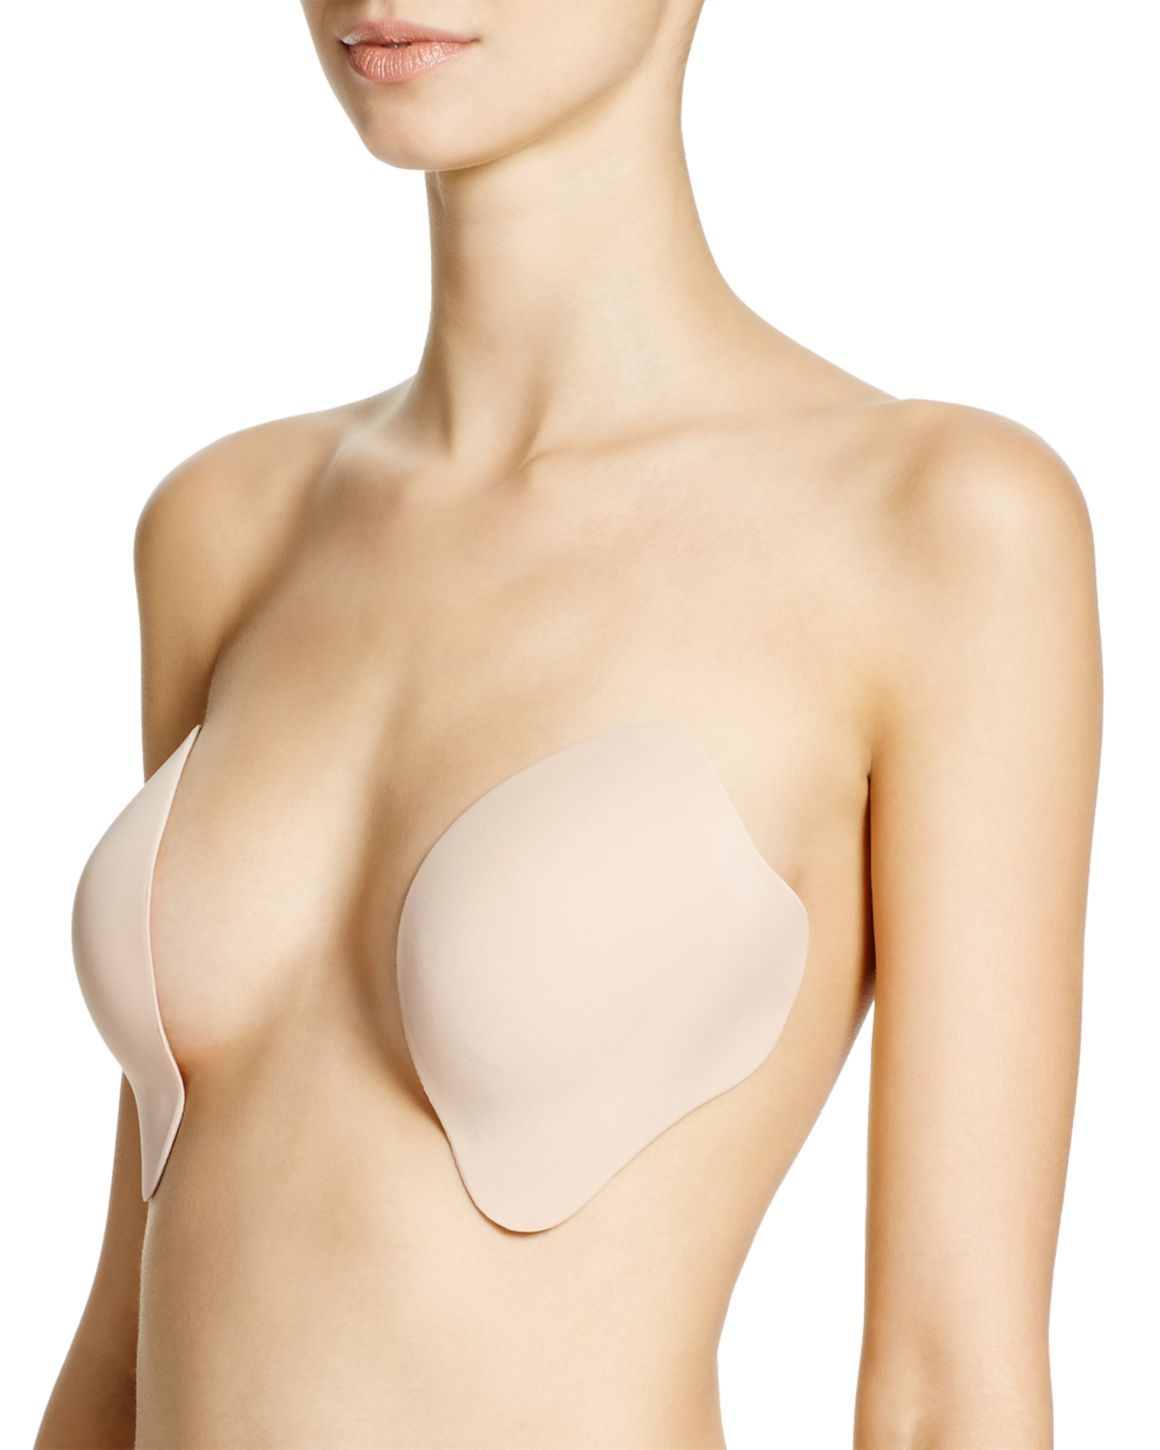 f289d4253 Fashion Forms Le Lusion Plunging Backless Adhesive Bra  P6563